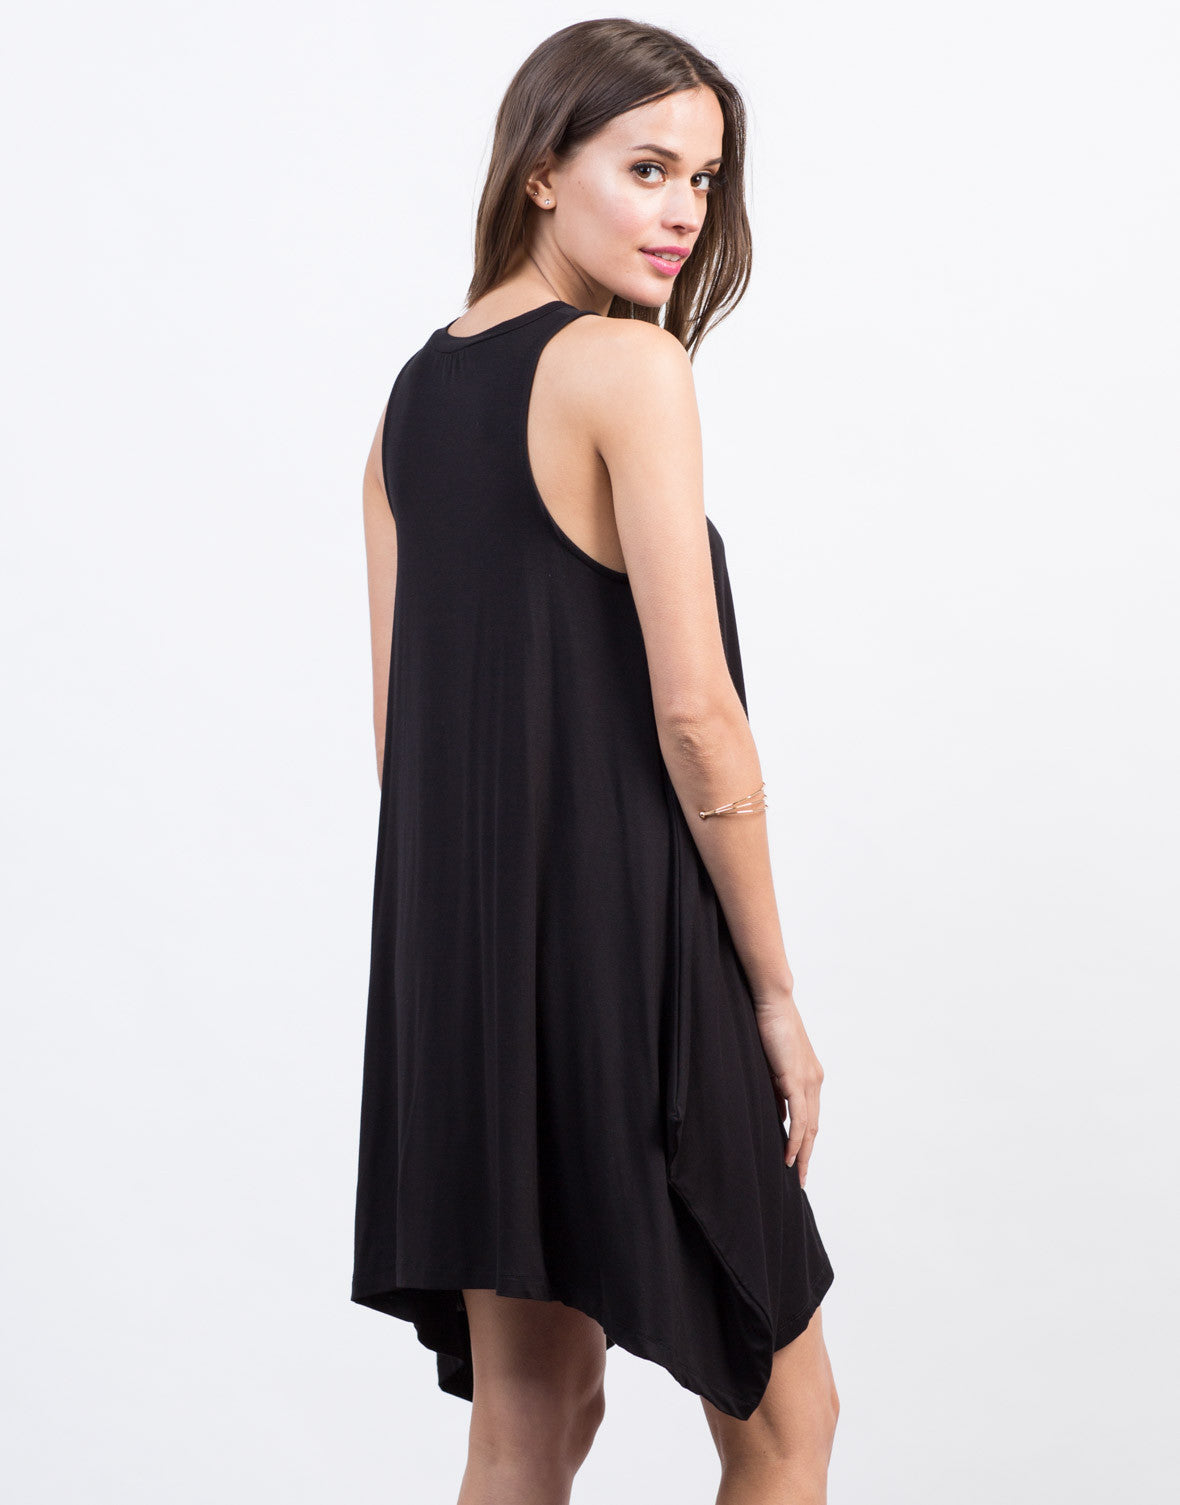 Back View of Flowy Sleeveless Dress